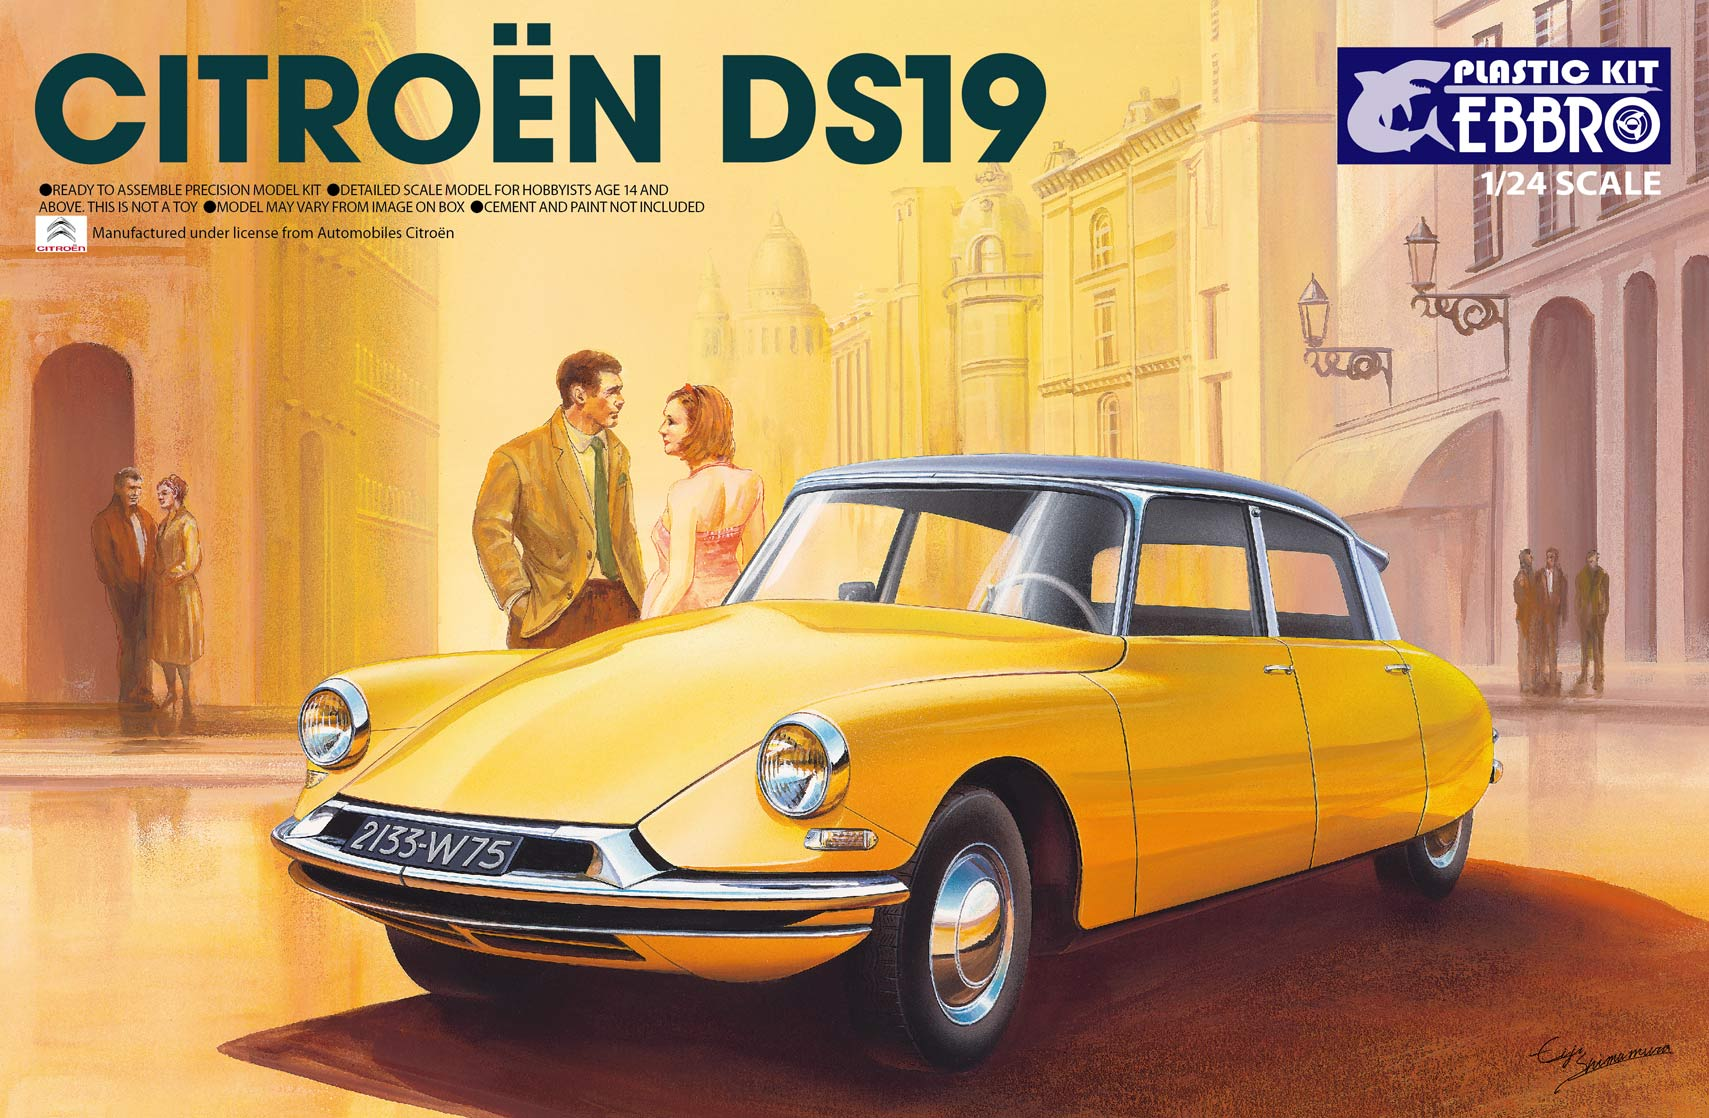 【25005】1/24 Citroen DS19  【PLASTIC KIT】